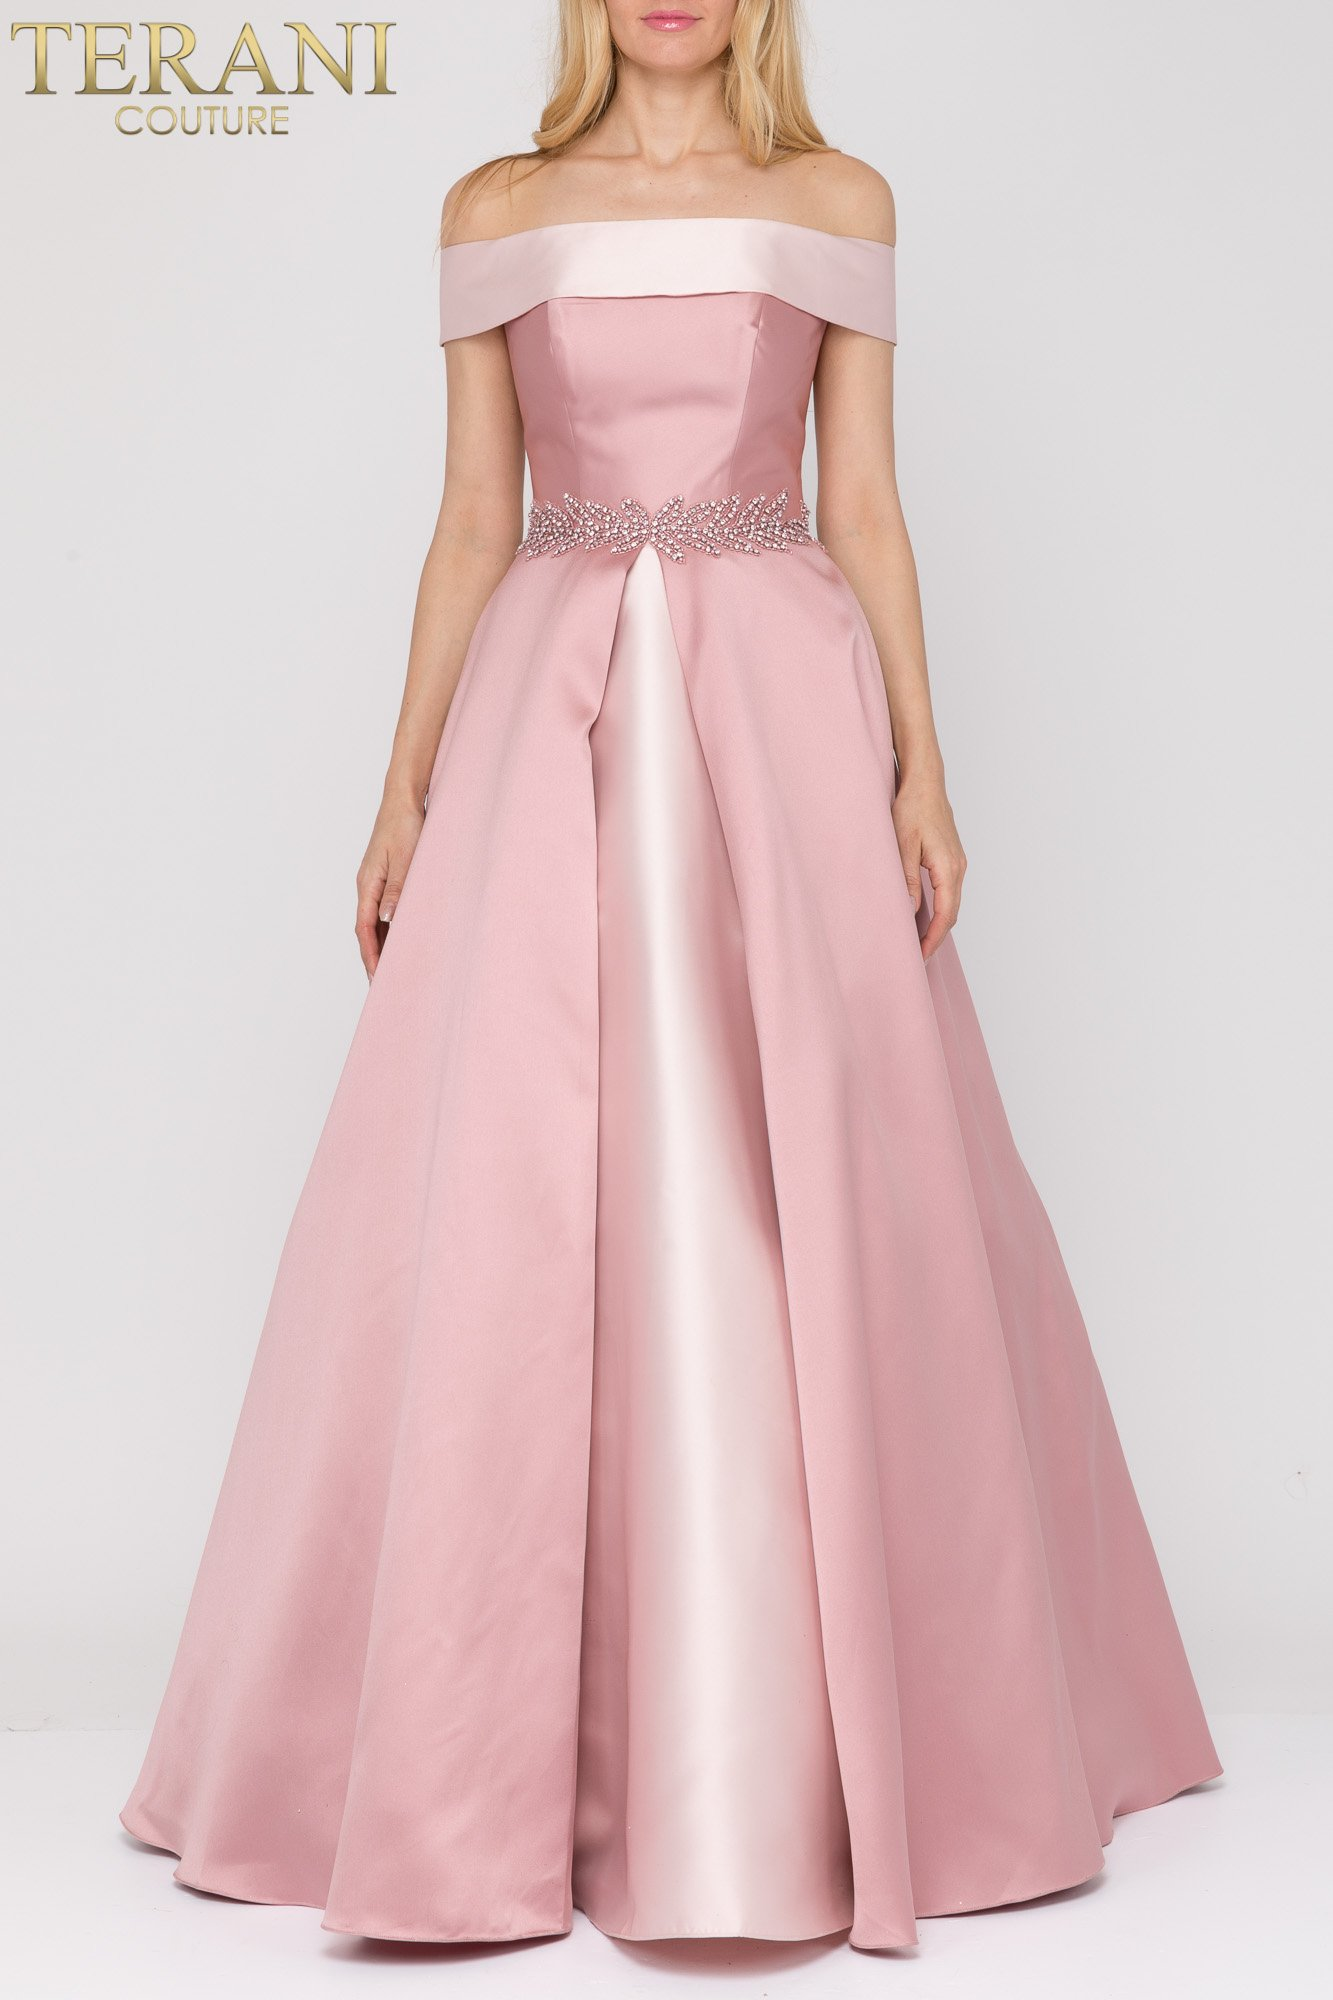 Style: 1921M0505 in BLUSH ROSE color